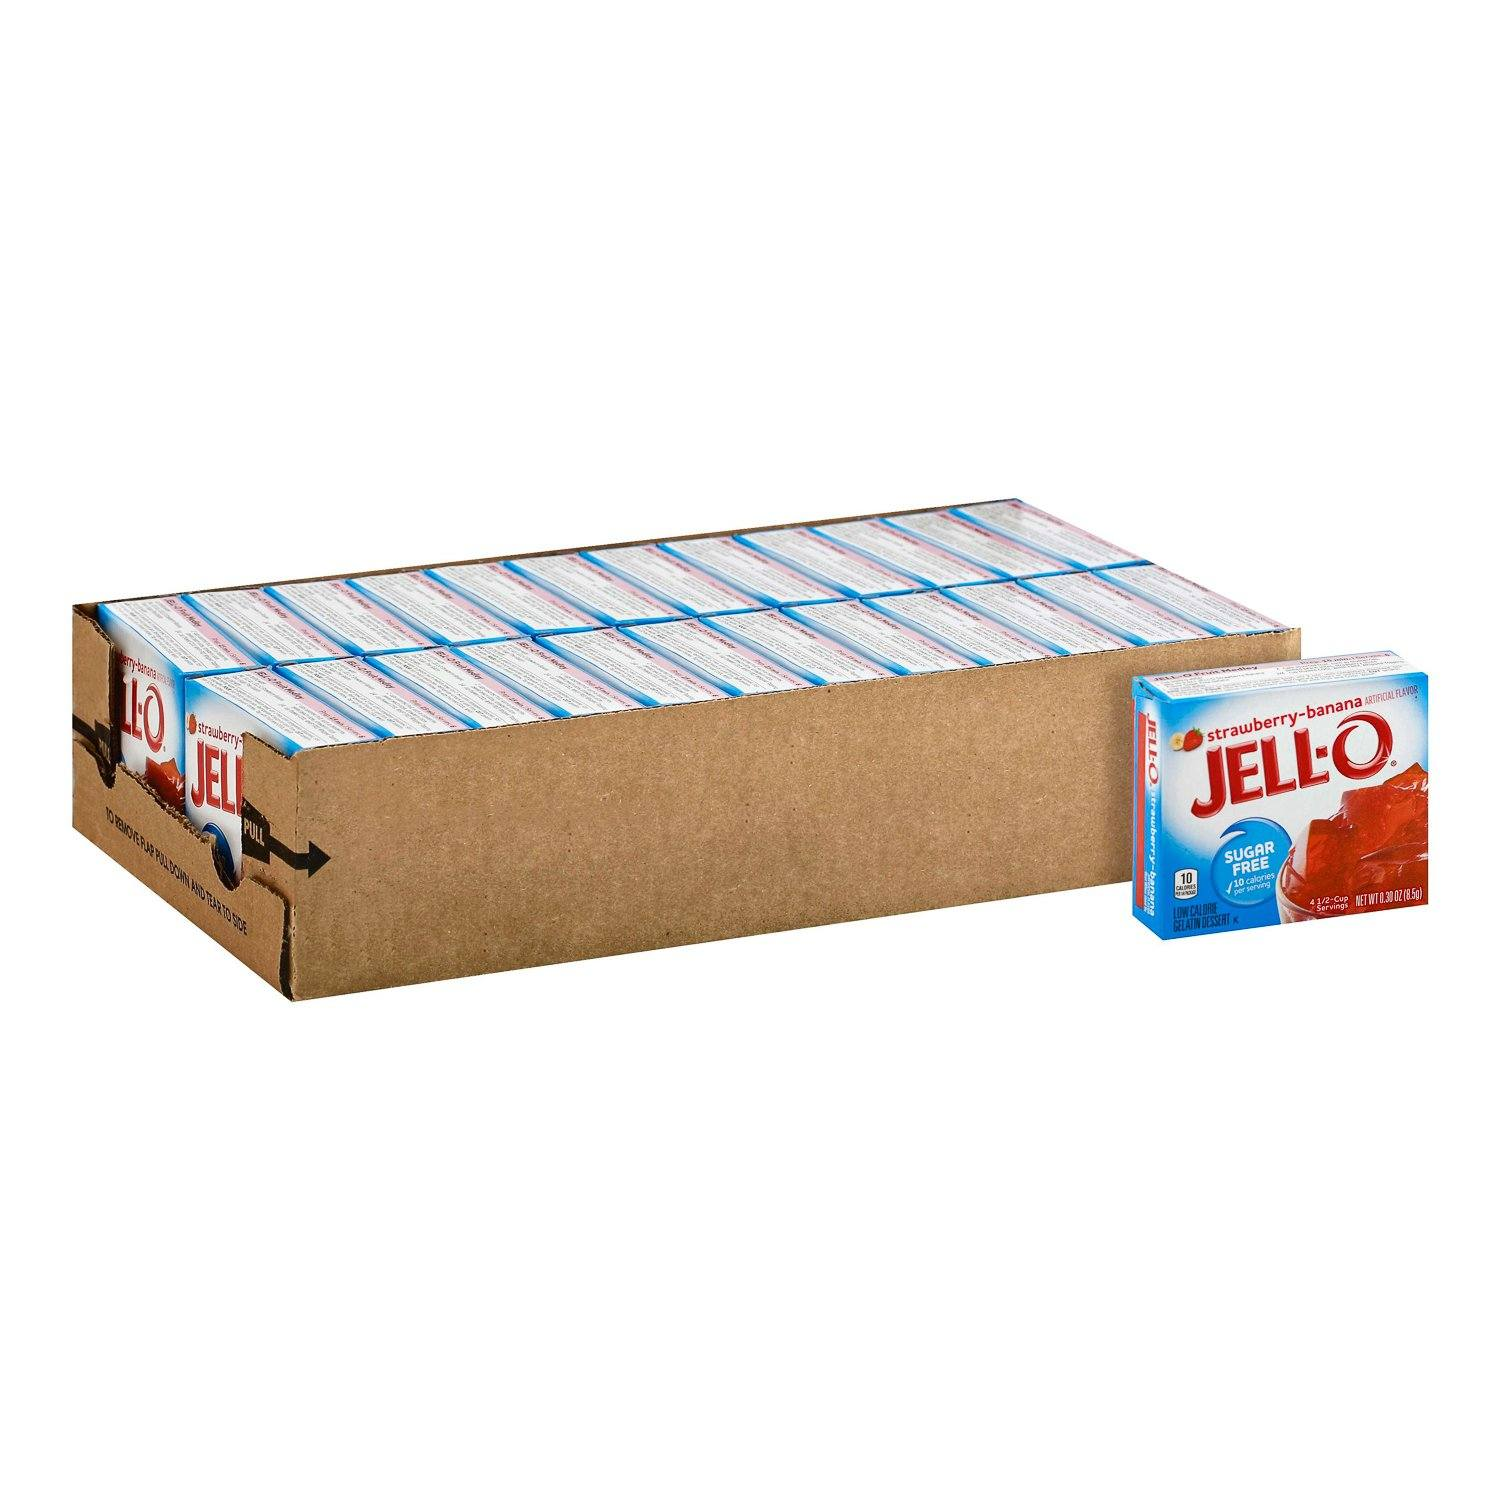 Jell-O Gelatin Mix Sugar Free Jell-O Sugar Free Strawberry-Banana 0.3 Oz-24 Count